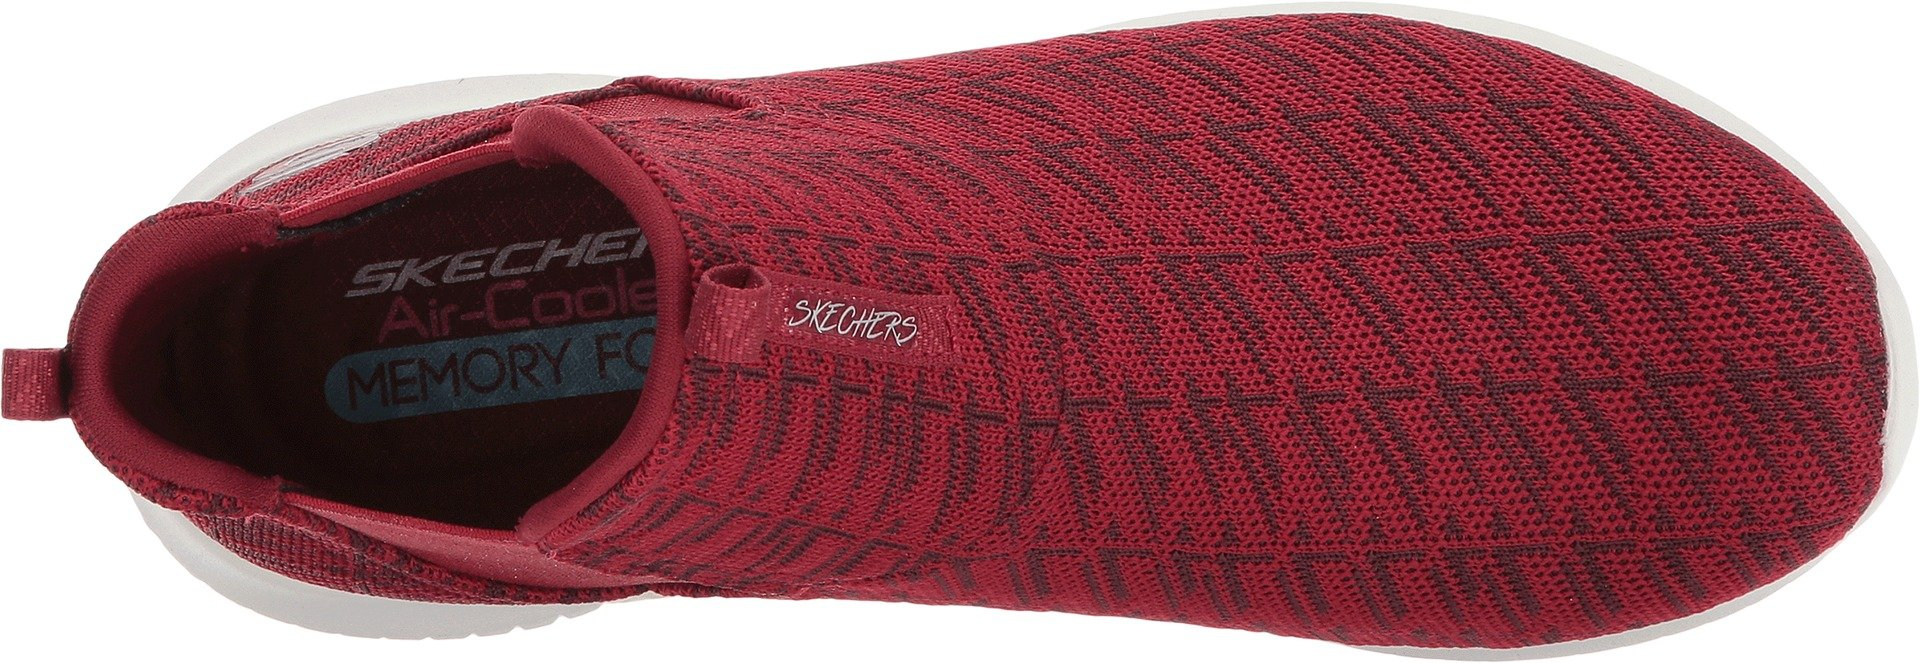 Skechers Women's Ultra Flex High Rise Pull On Fashion Sneaker Shoes Red Size 8.5 by Skechers (Image #2)